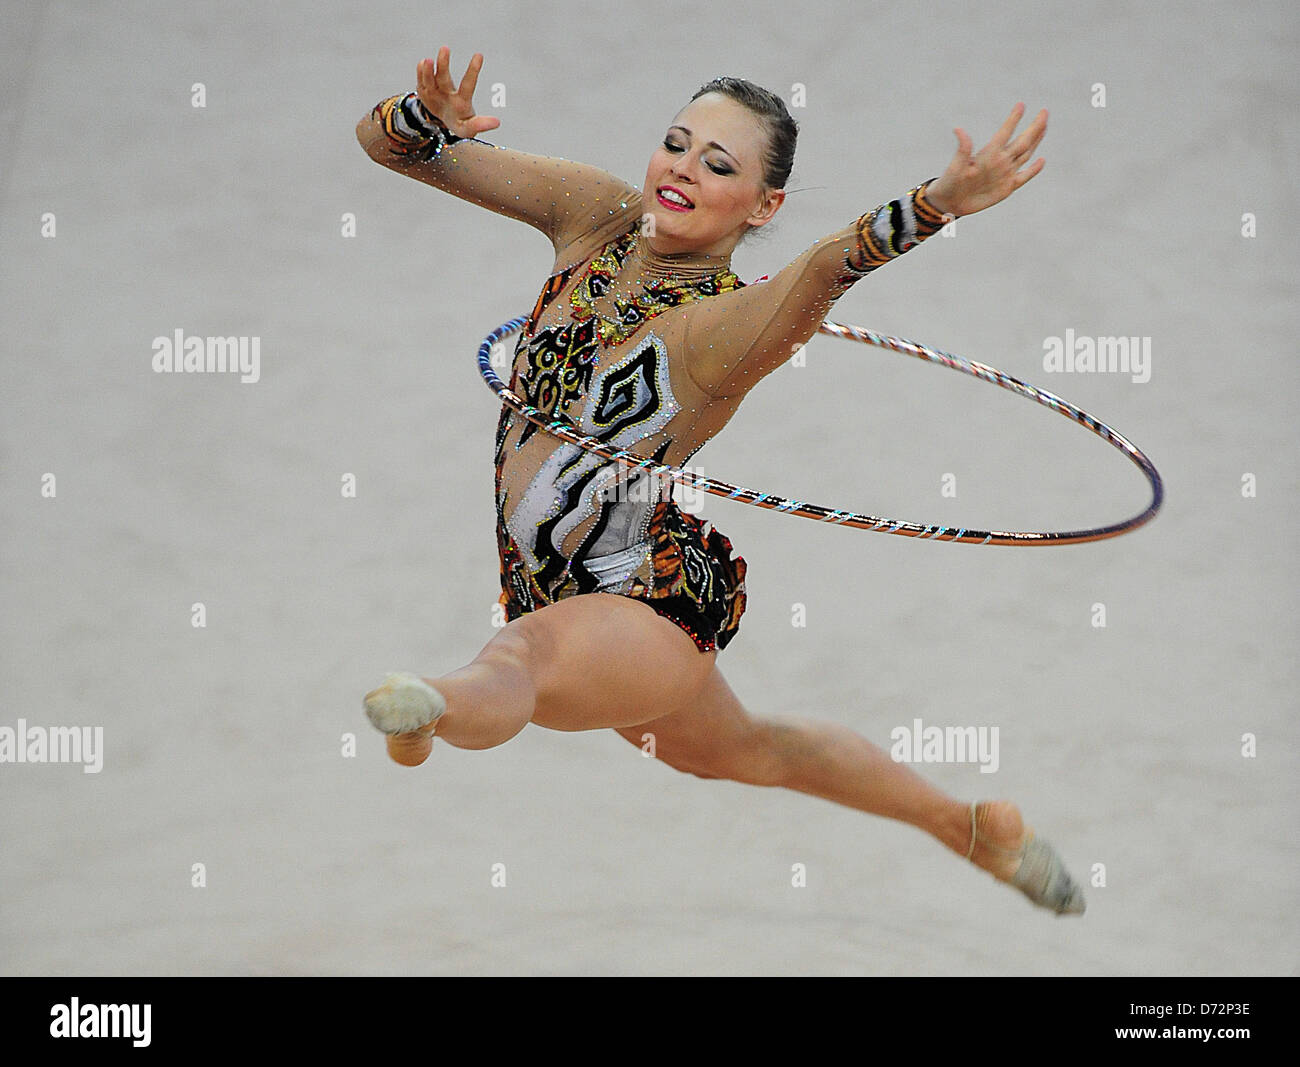 26.04.2013 Pesaro, Italy.  Nicol Ruprecht of Austria during day one of the Rhythmic Gymnastic World Cup Series from - Stock Image